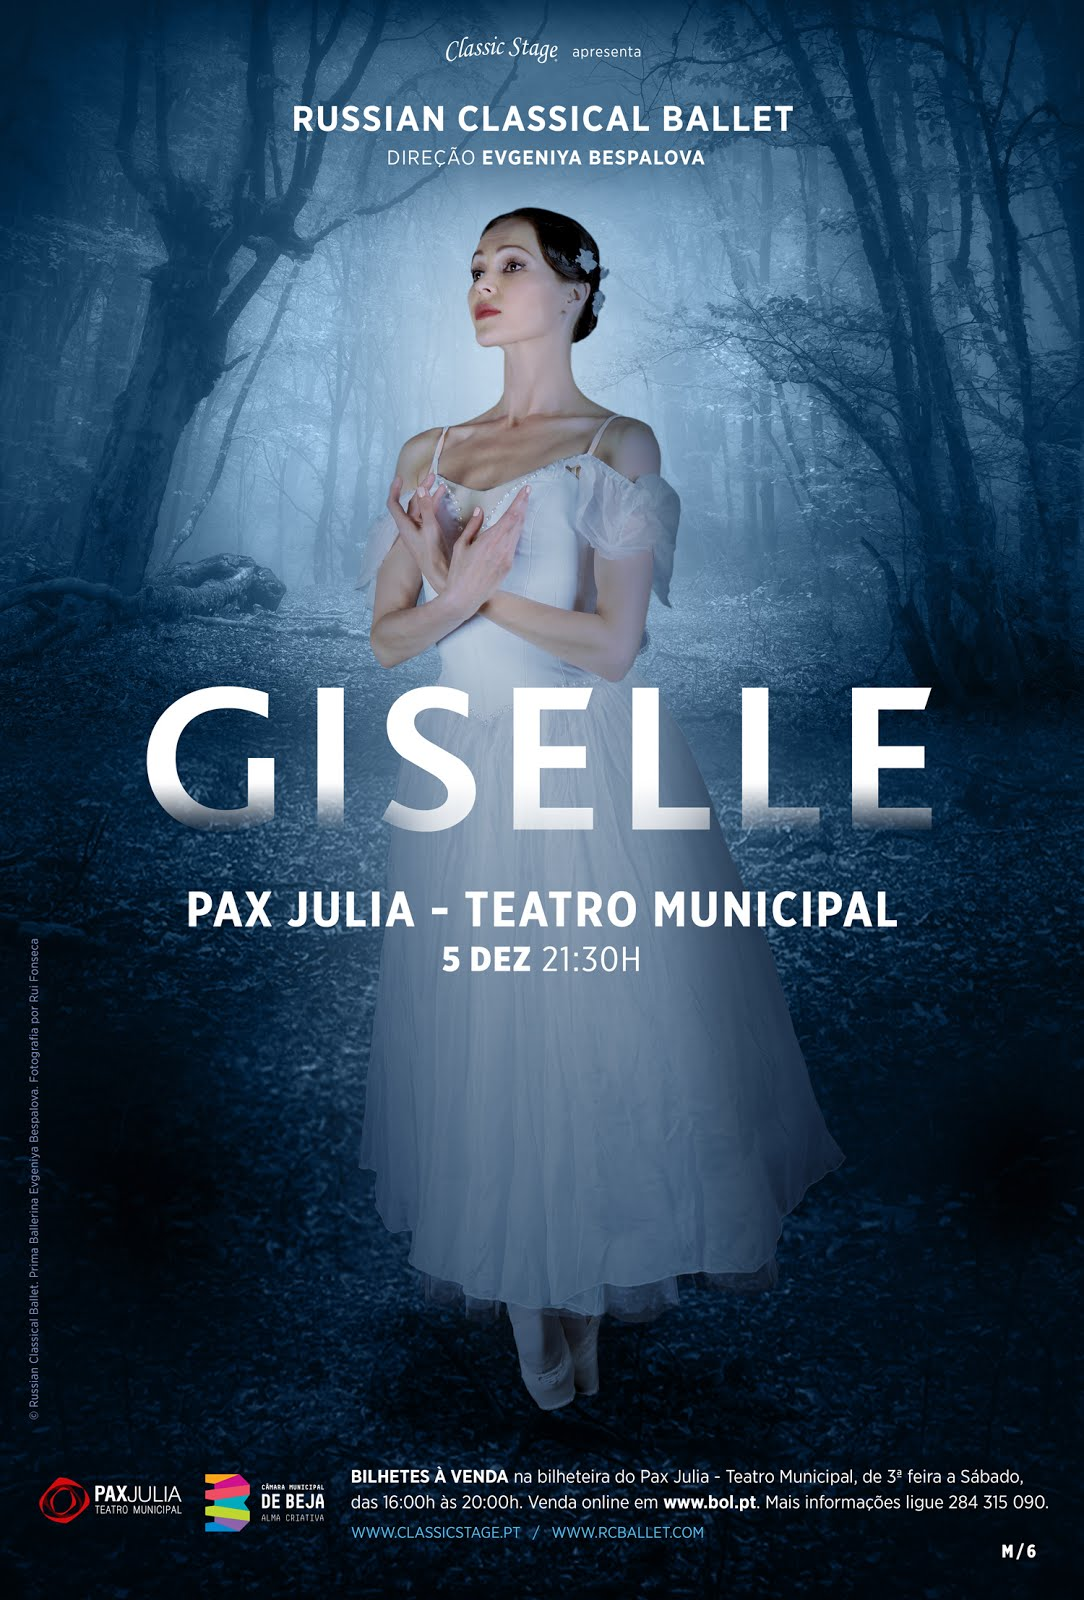 GISELLE pelo Russian Classical Ballet